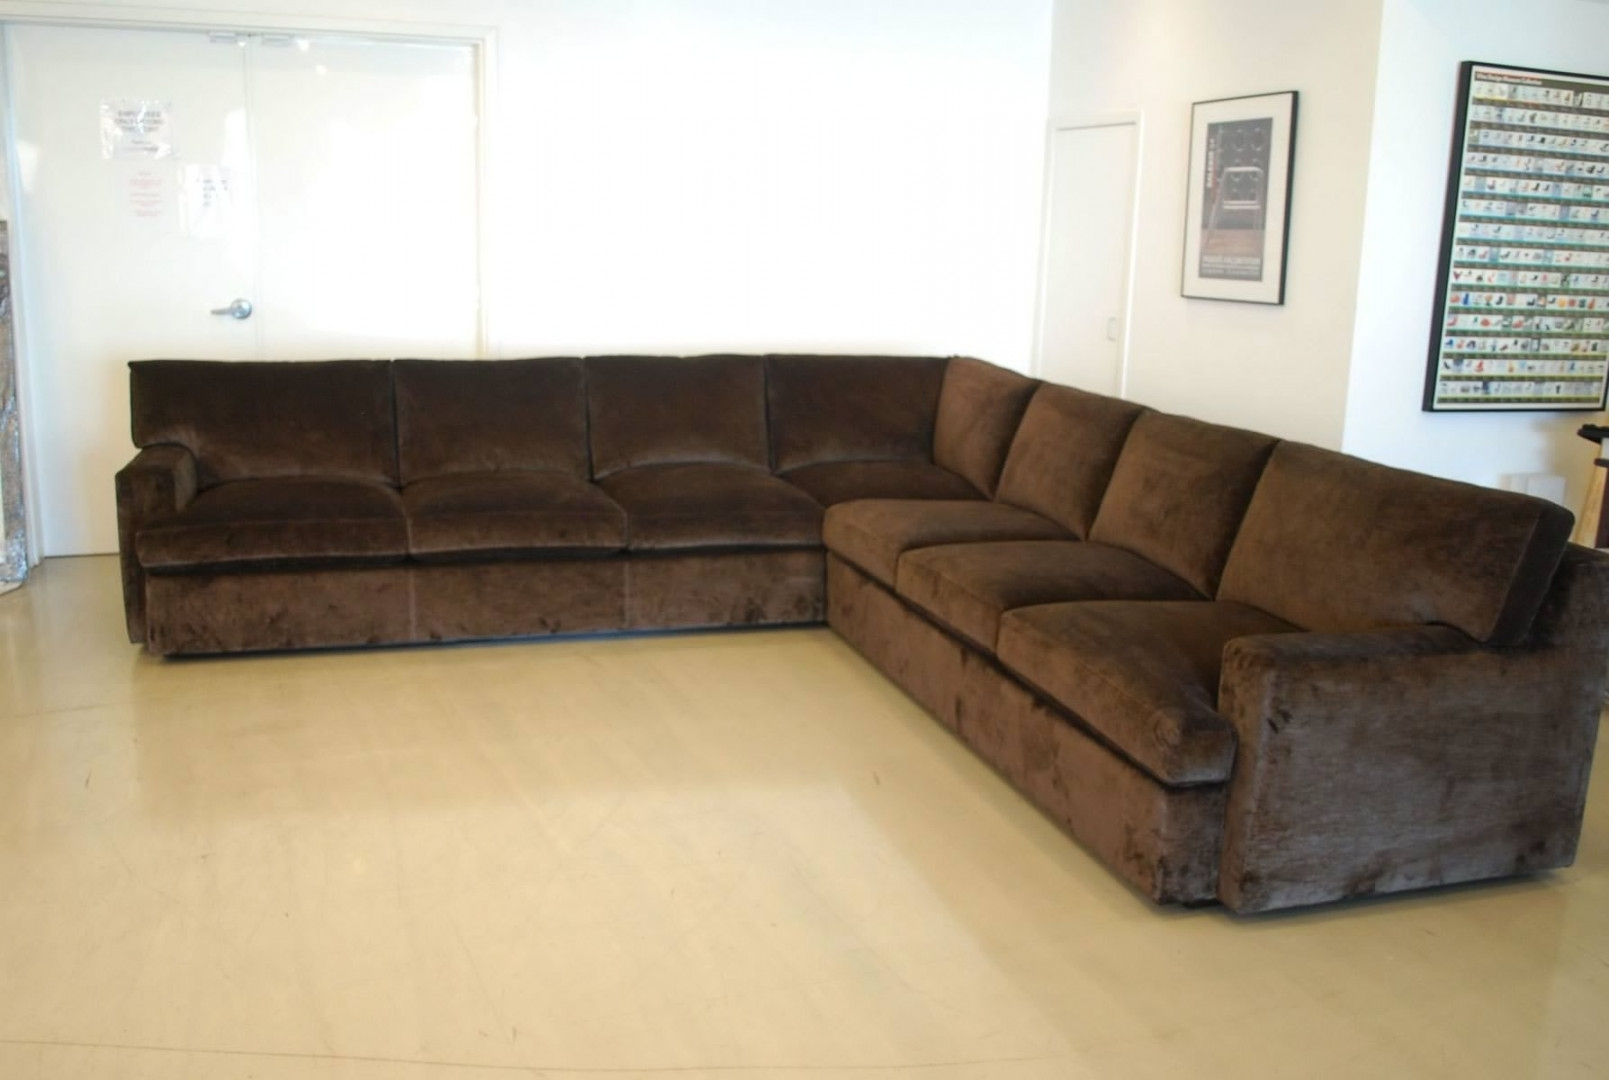 Sectional Sofa Design: Custom Sectional Sofas Recliners Small | Home With Customizable Sectional Sofas (Image 7 of 10)